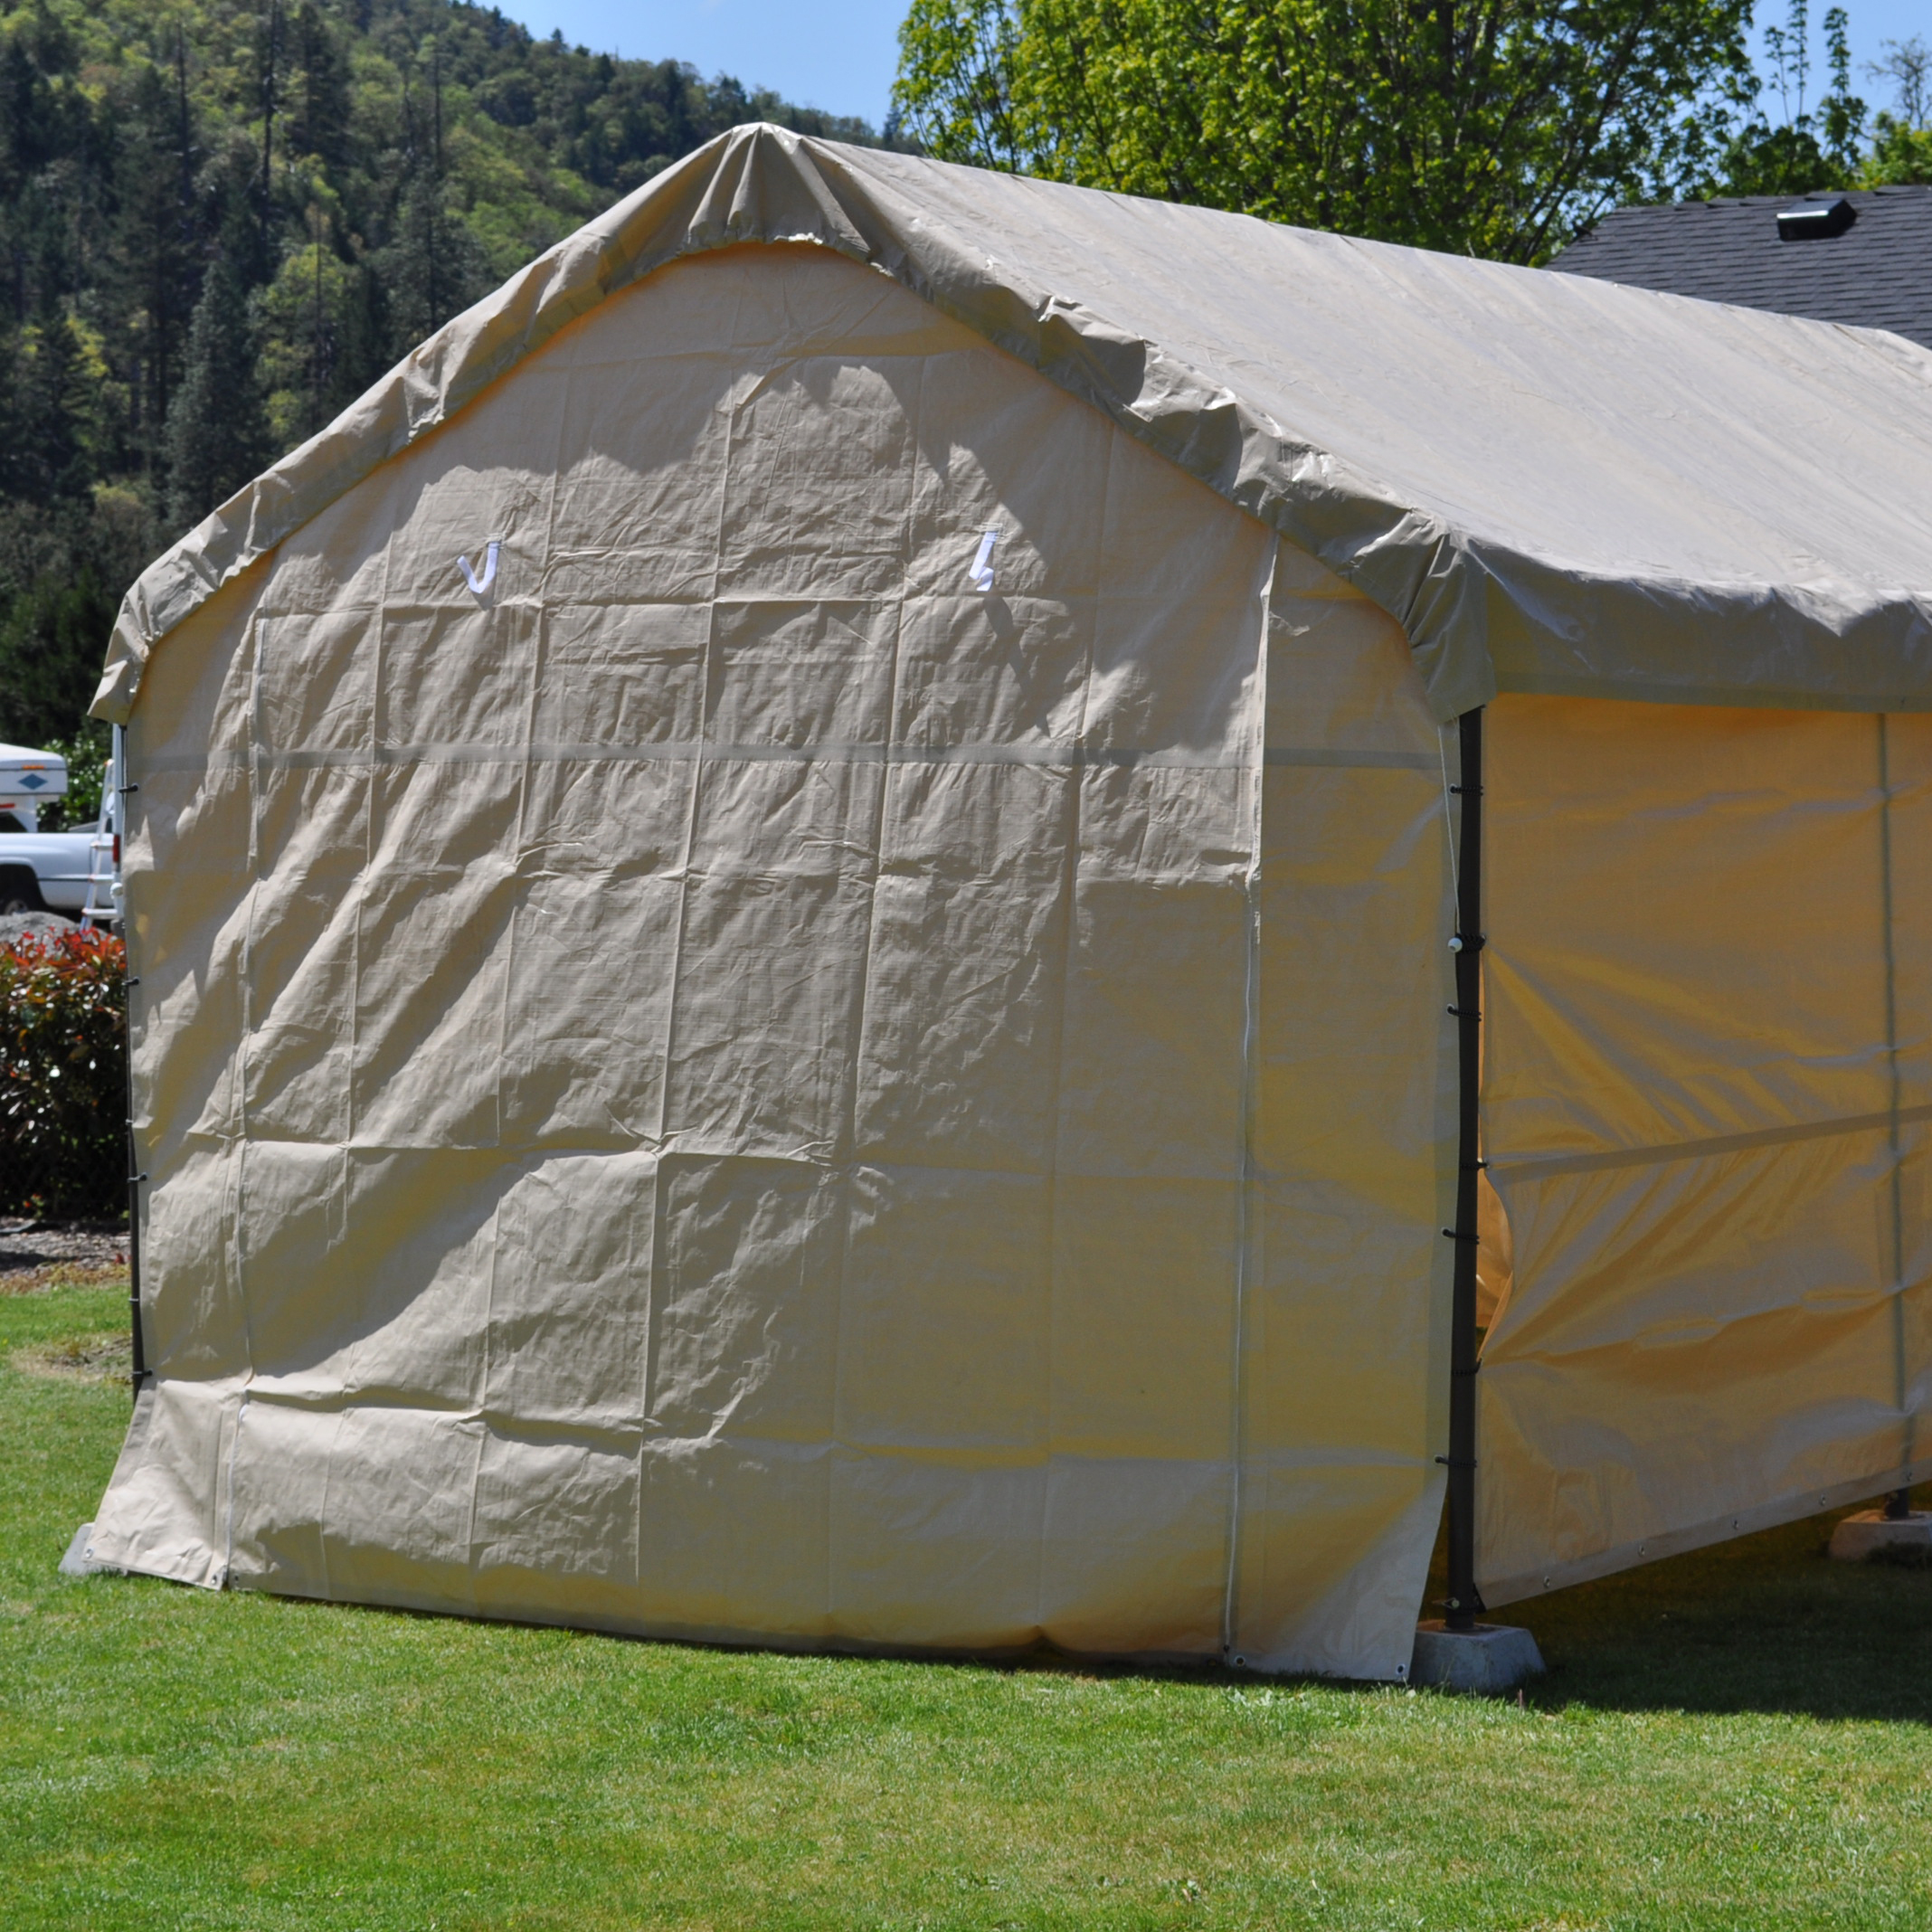 Cover Me Tarps and Canopies Frame Tent Manufacturing Providing temporary shelter from sun & rain Complete line of Tarps & Canopies for protection from sun or rain. Our Heavy Duty 6 & 8 oz. silver sunblock or 8 oz. Heavy Duty White polytarps are the same tarp used on the canopy frame kits.